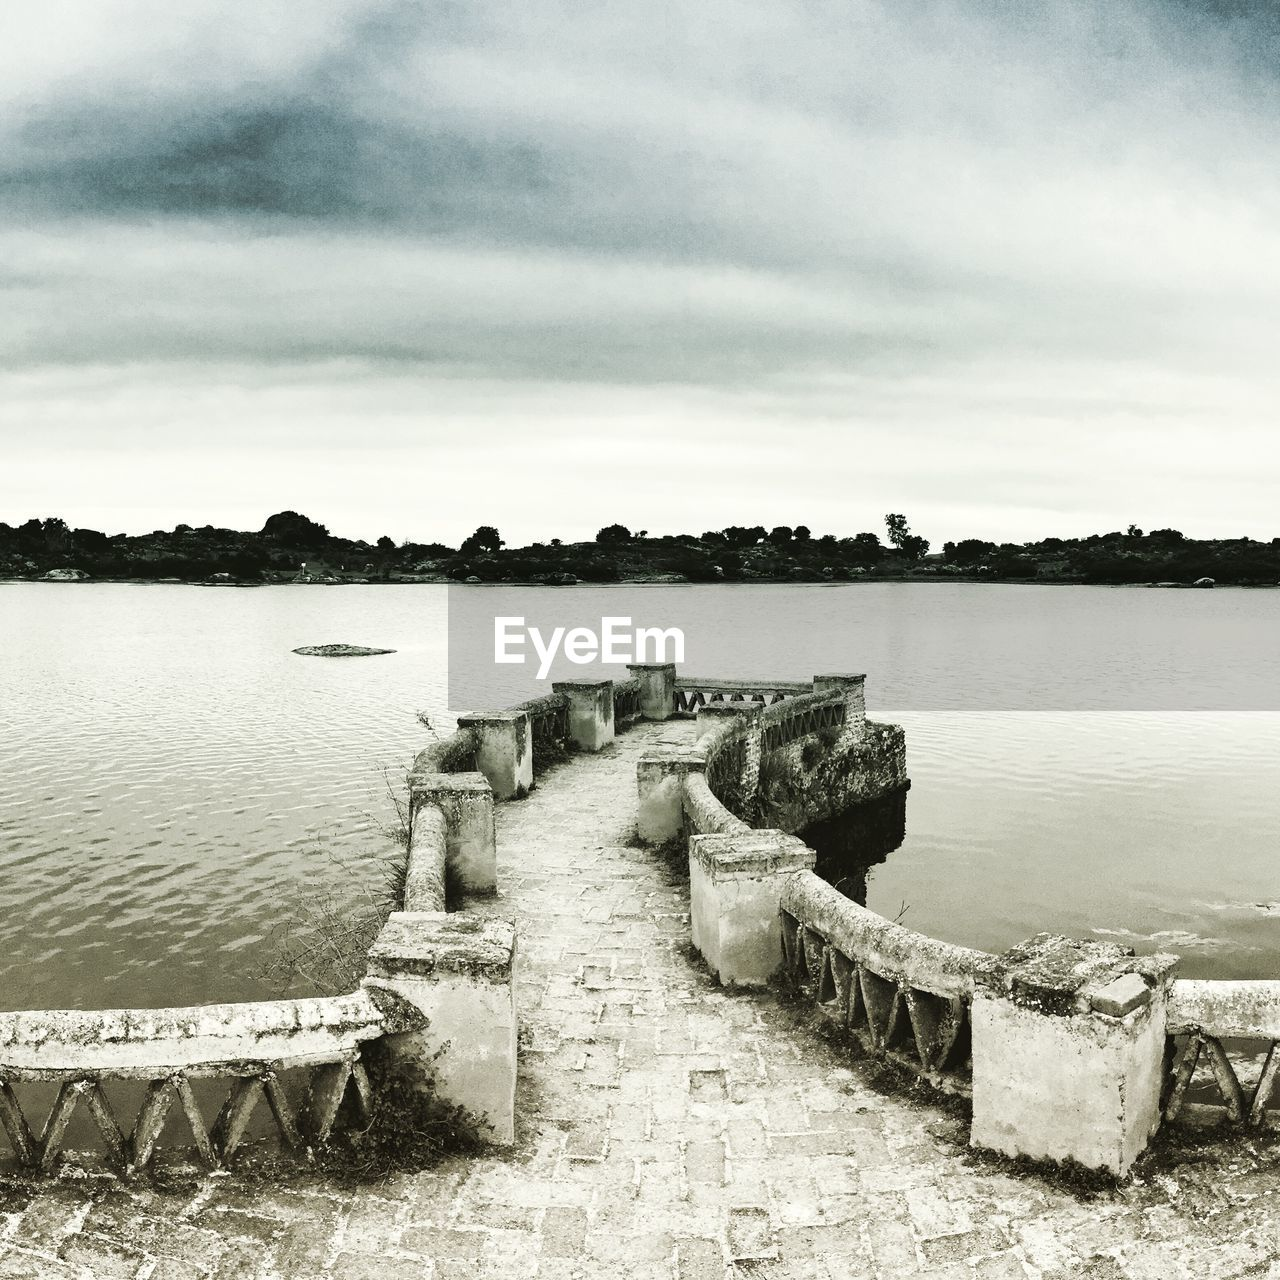 water, sky, cloud - sky, nature, lake, tranquil scene, tranquility, day, no people, scenics - nature, beauty in nature, architecture, outdoors, built structure, tree, plant, concrete